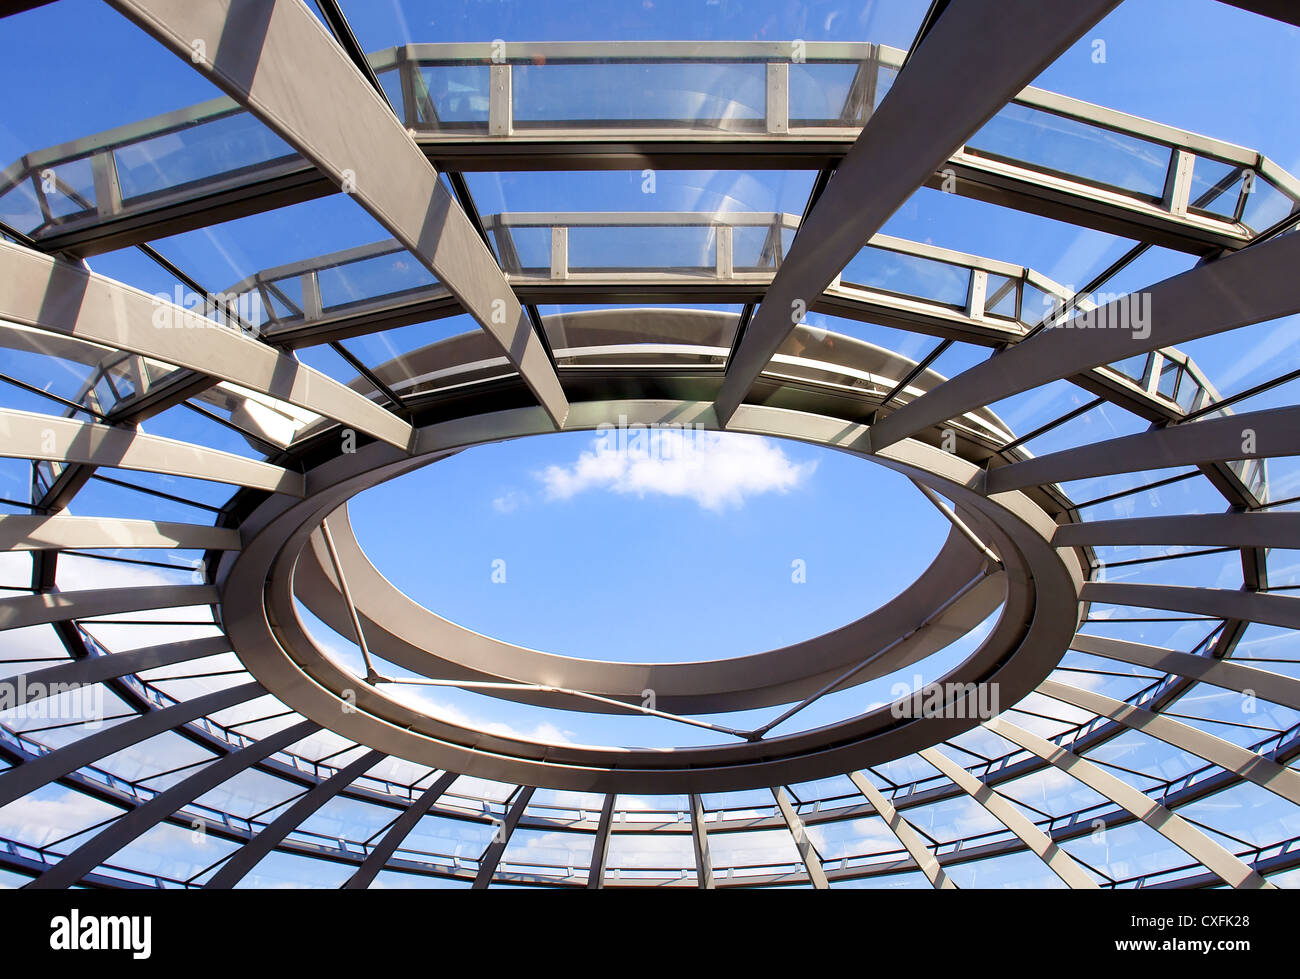 Modern dome of Reichstag (Germany's parliament building) in Berlin. Design by architect Norman Foster - Stock Image